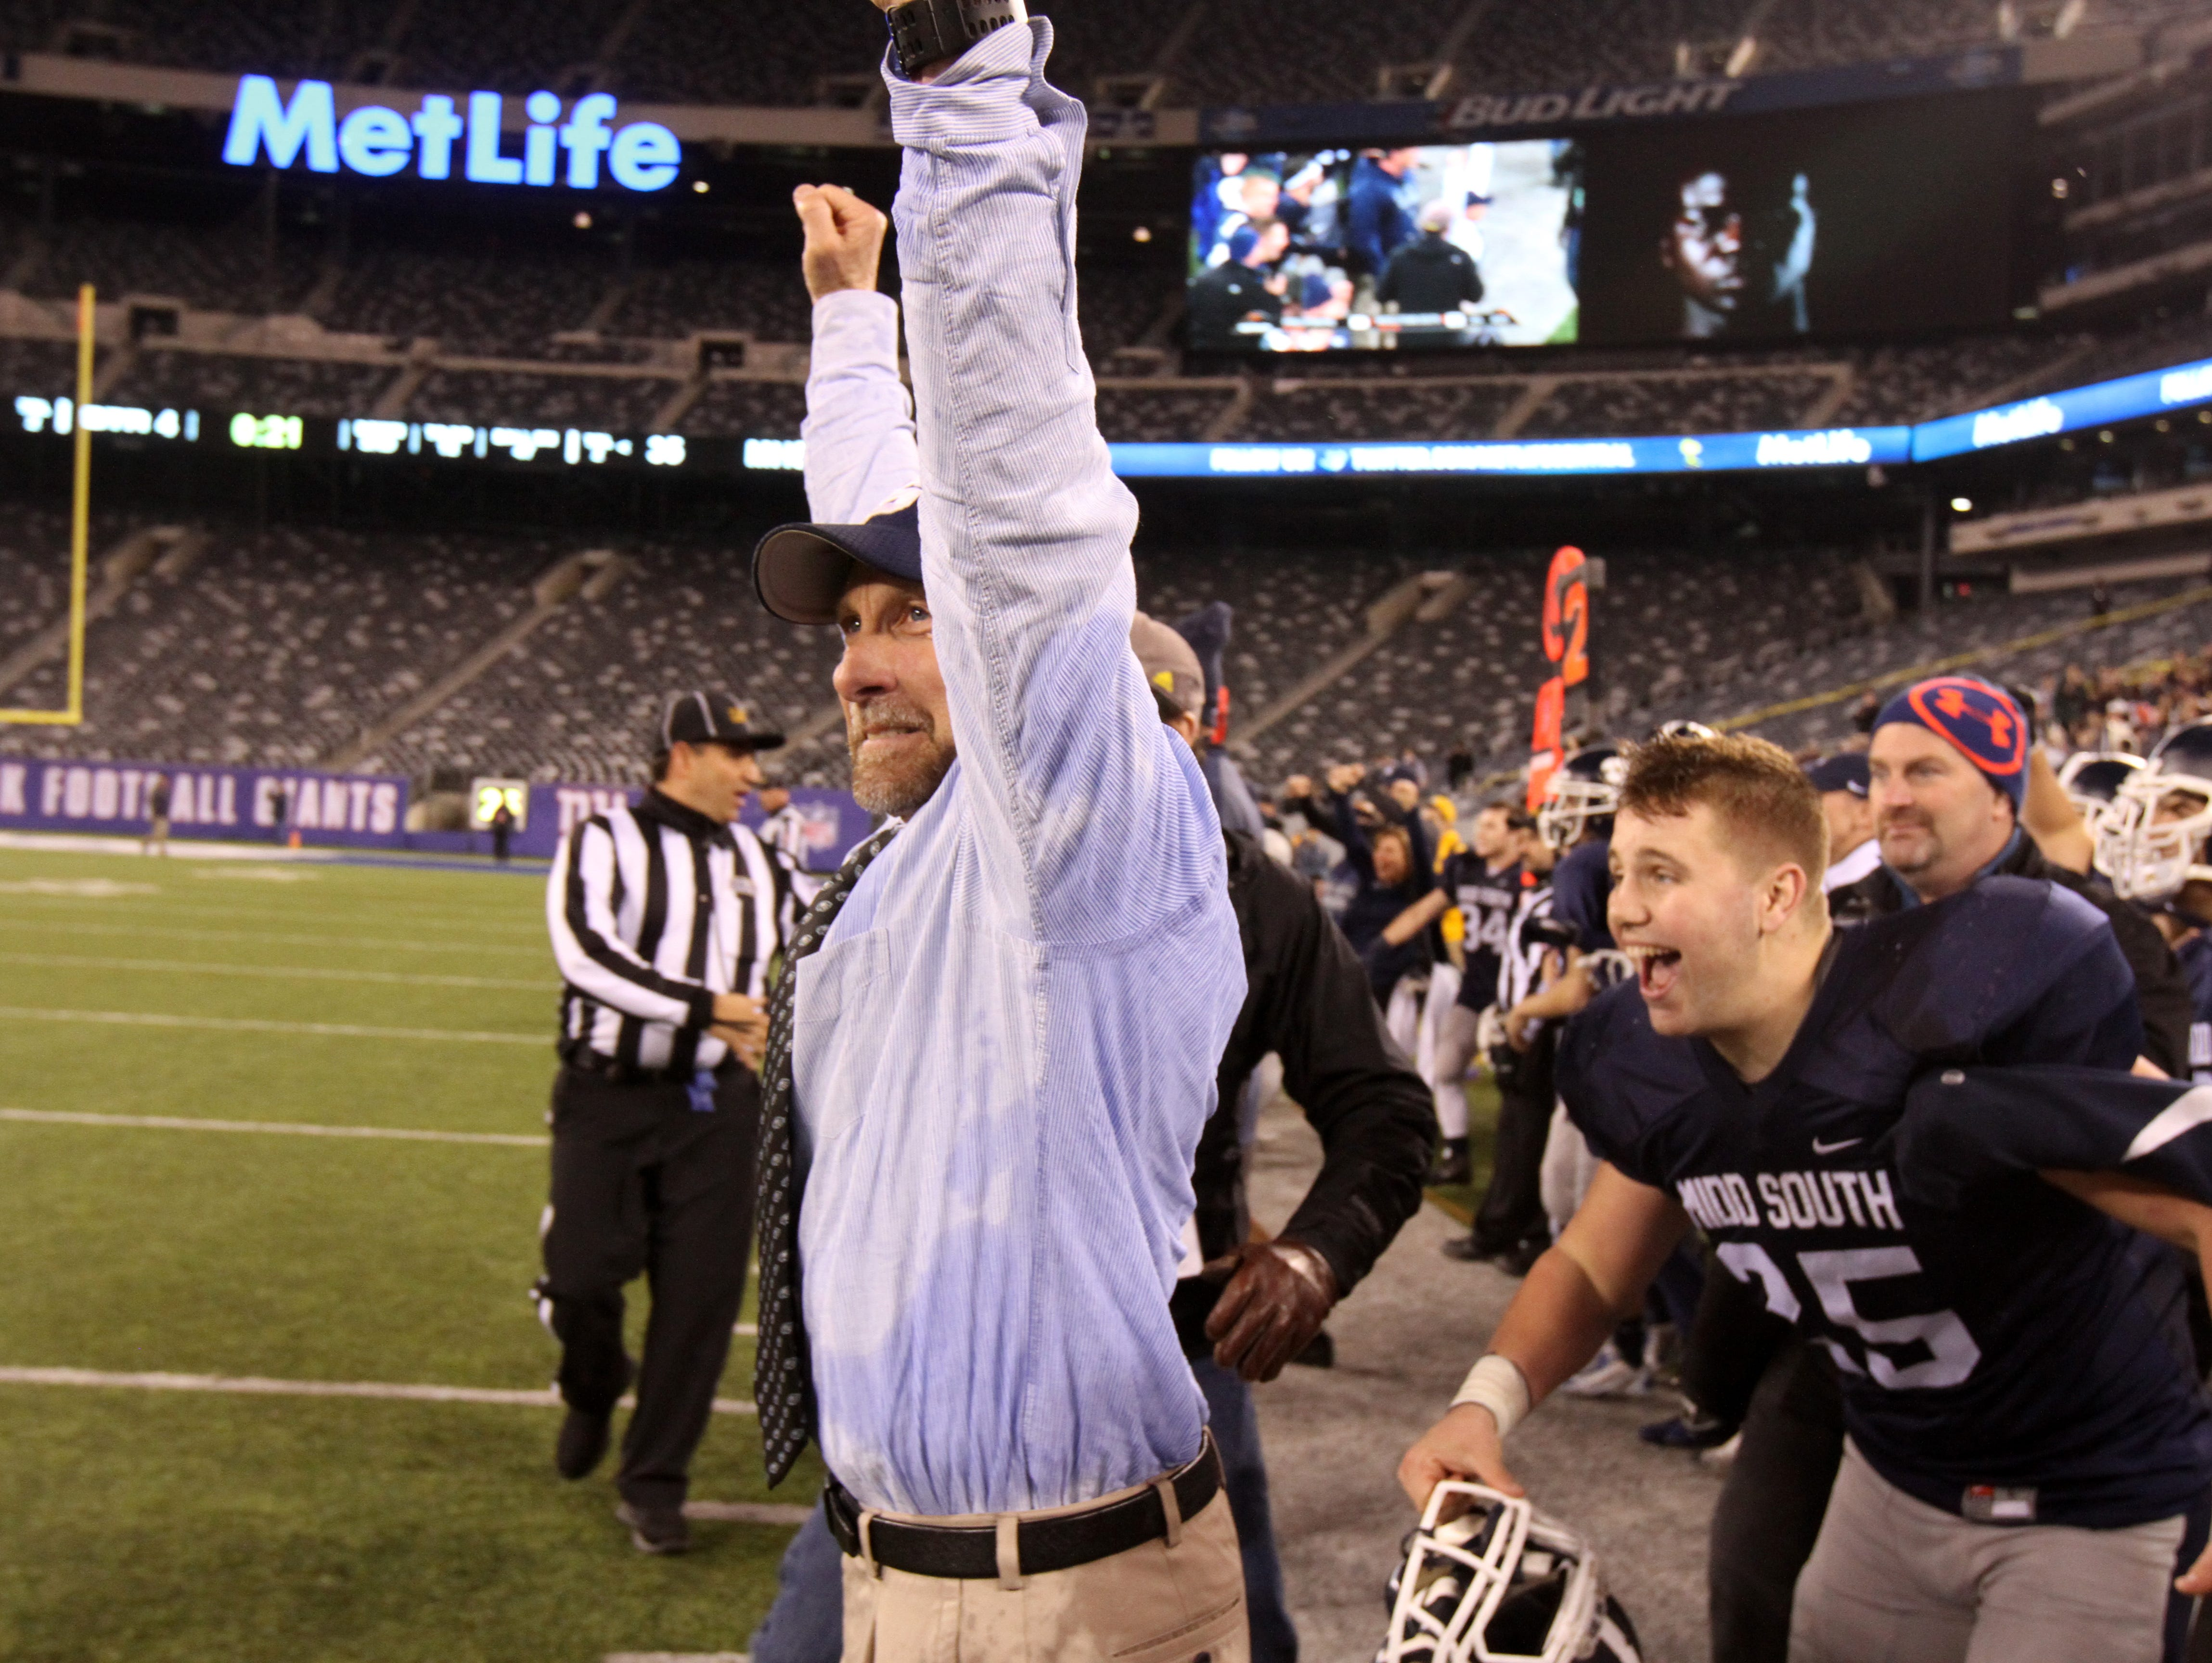 Middletown South High School head coach Steve Antonucci celebrates winning the state title against Phillipsburg in the North 2 Group IV game of the 2015 NJSIAA/MetLife Stadium High School Football Championships at MetLife Stadium in East Rutherford, NJ Saturday December 5, 2015.